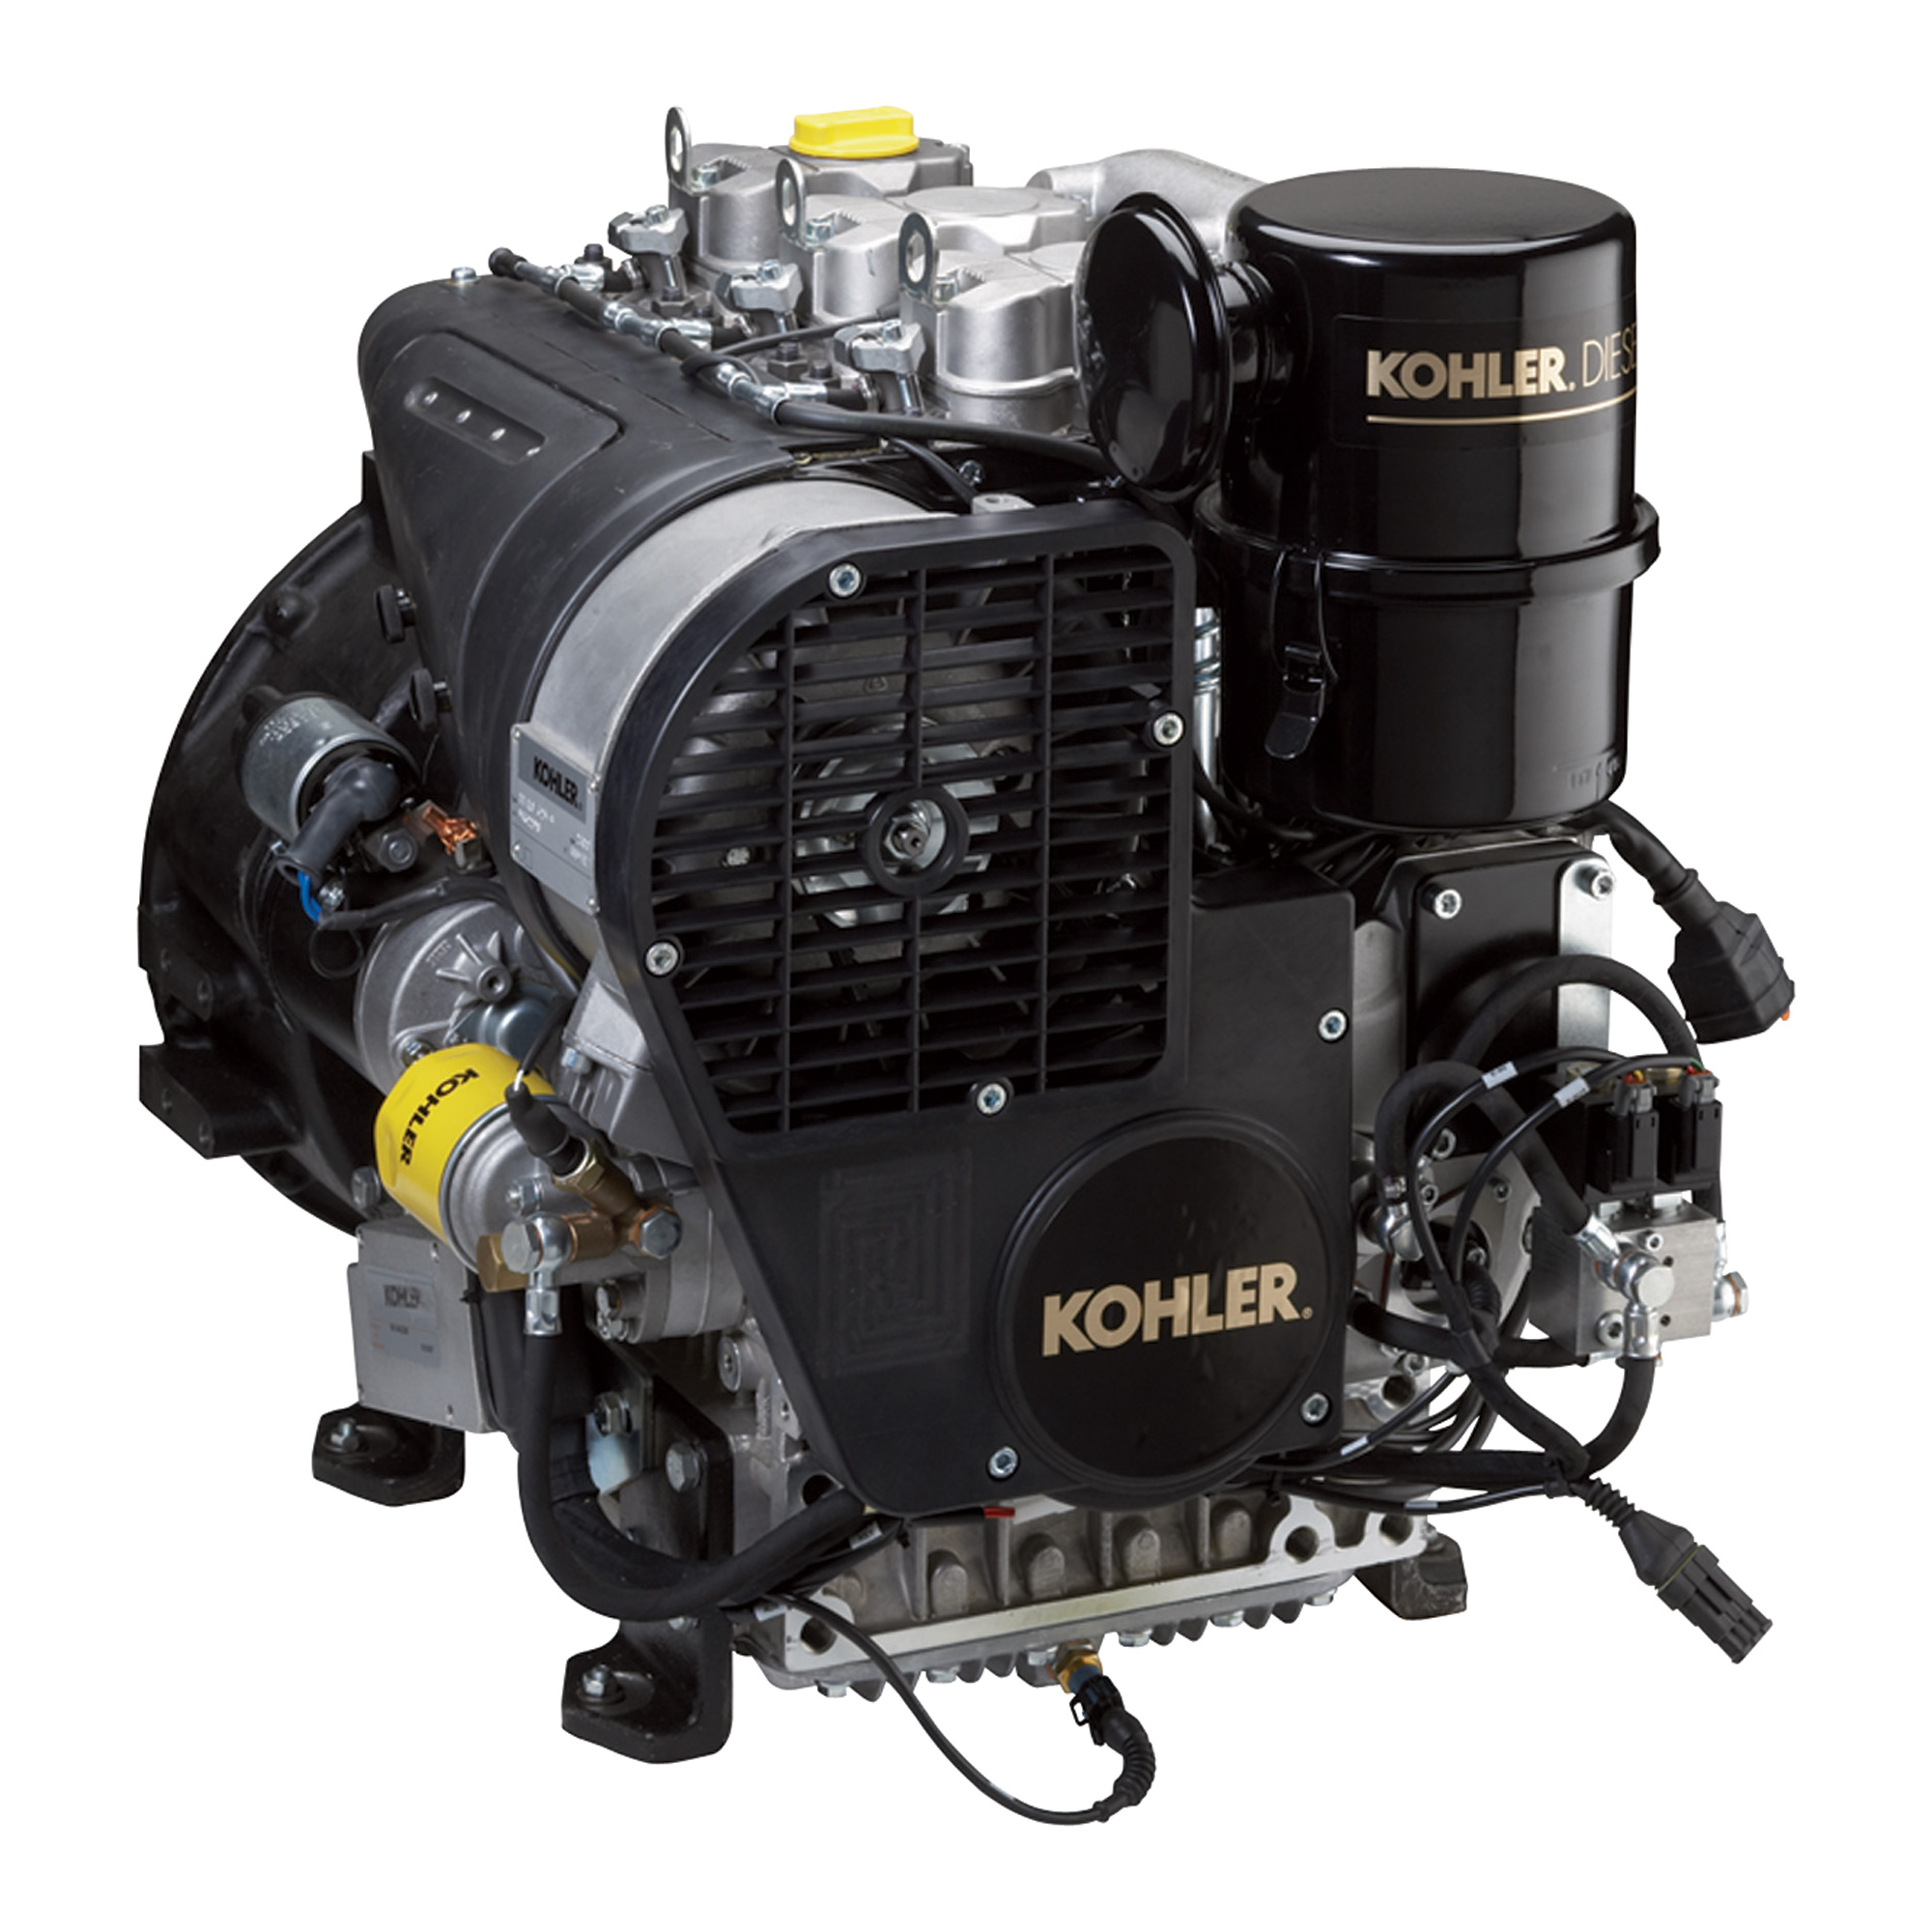 KOHLER Diesel Engine Service Equipment